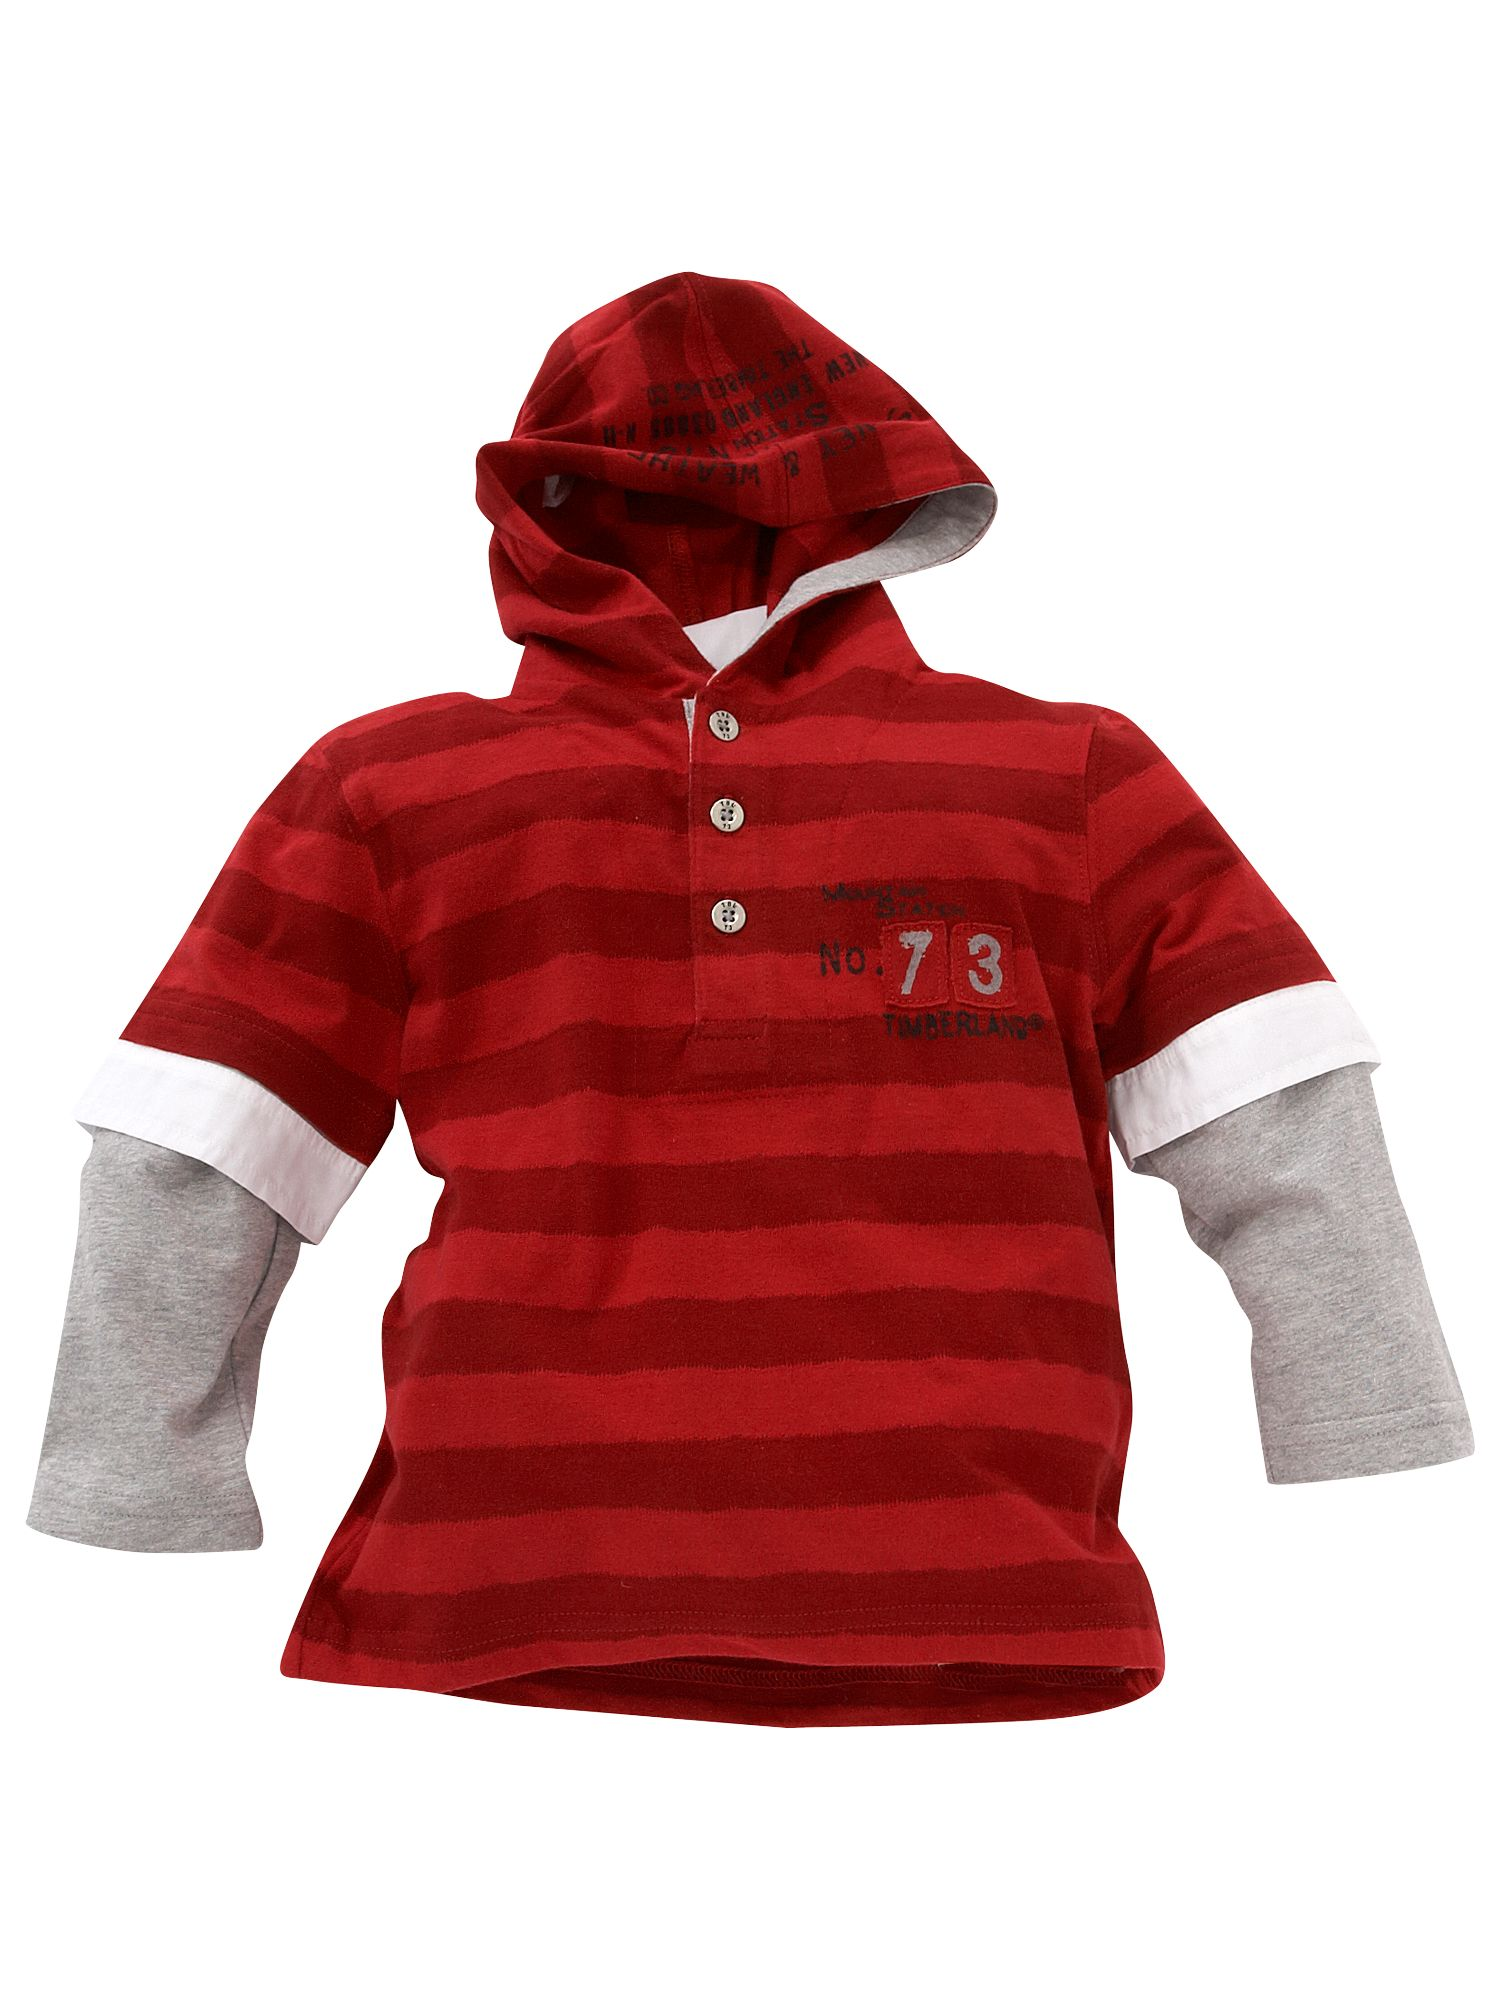 Timberland Long-sleeved striped rugby shirt with product image